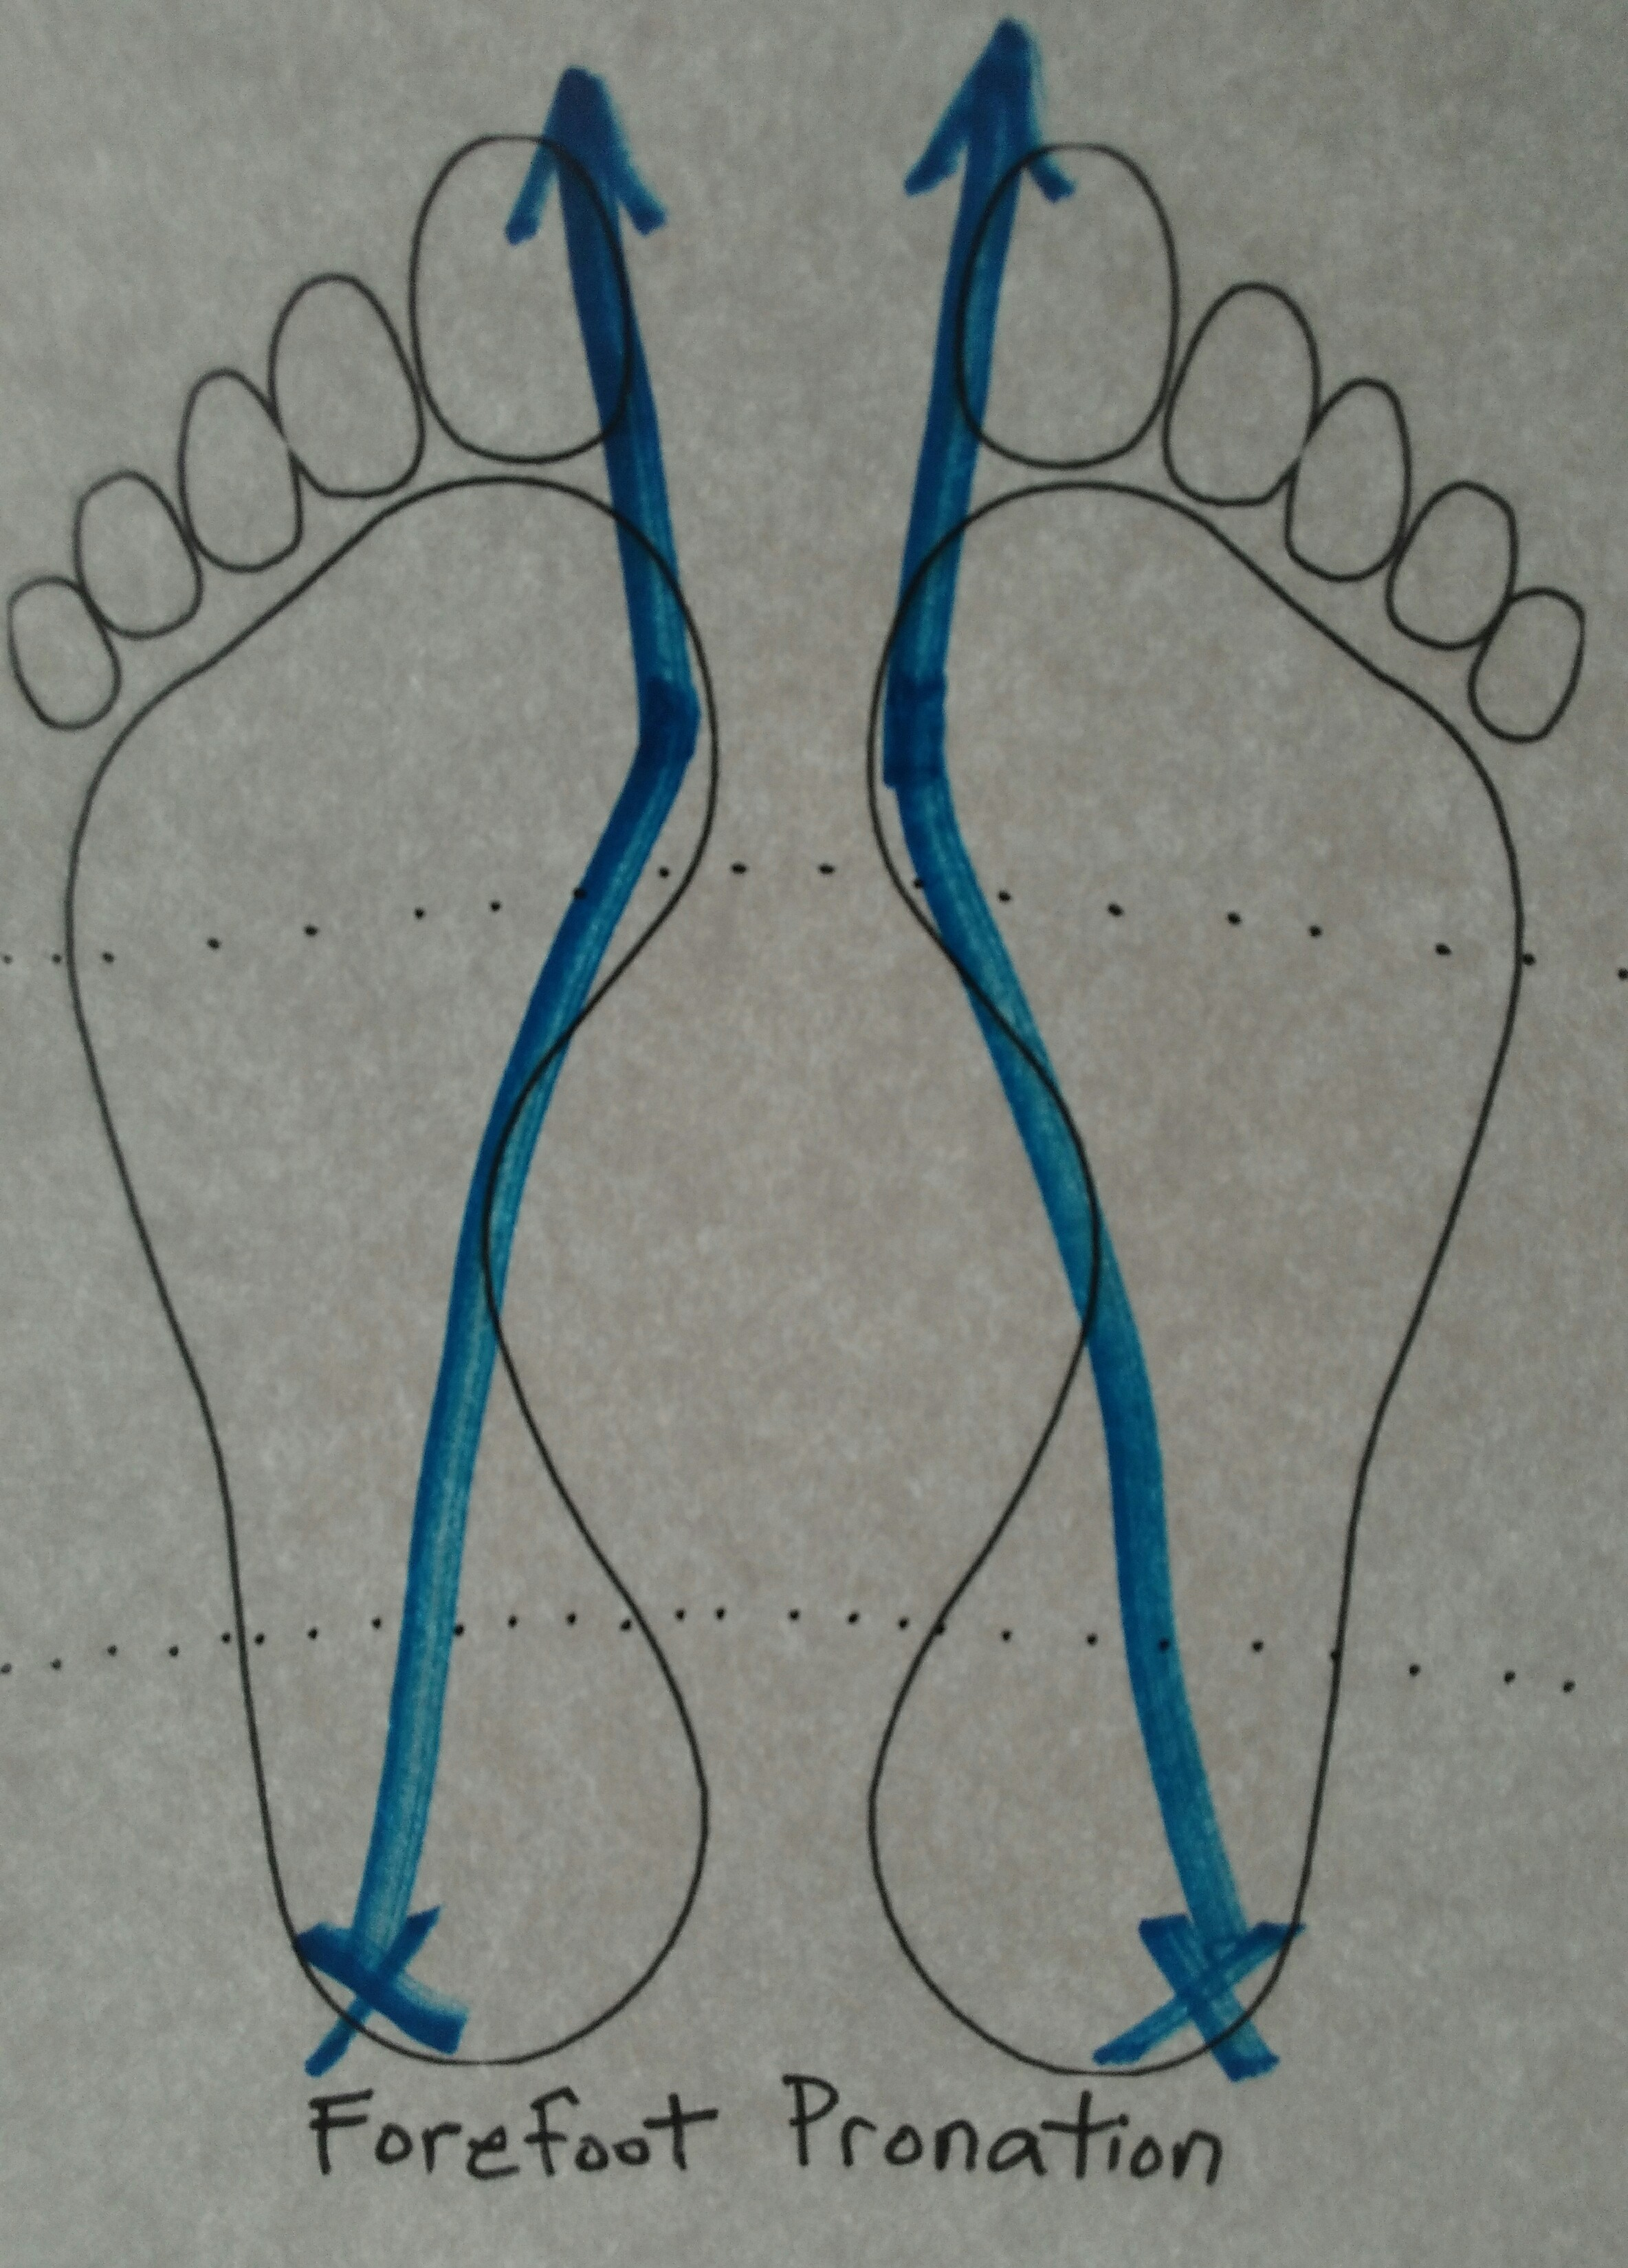 forefoot pronation